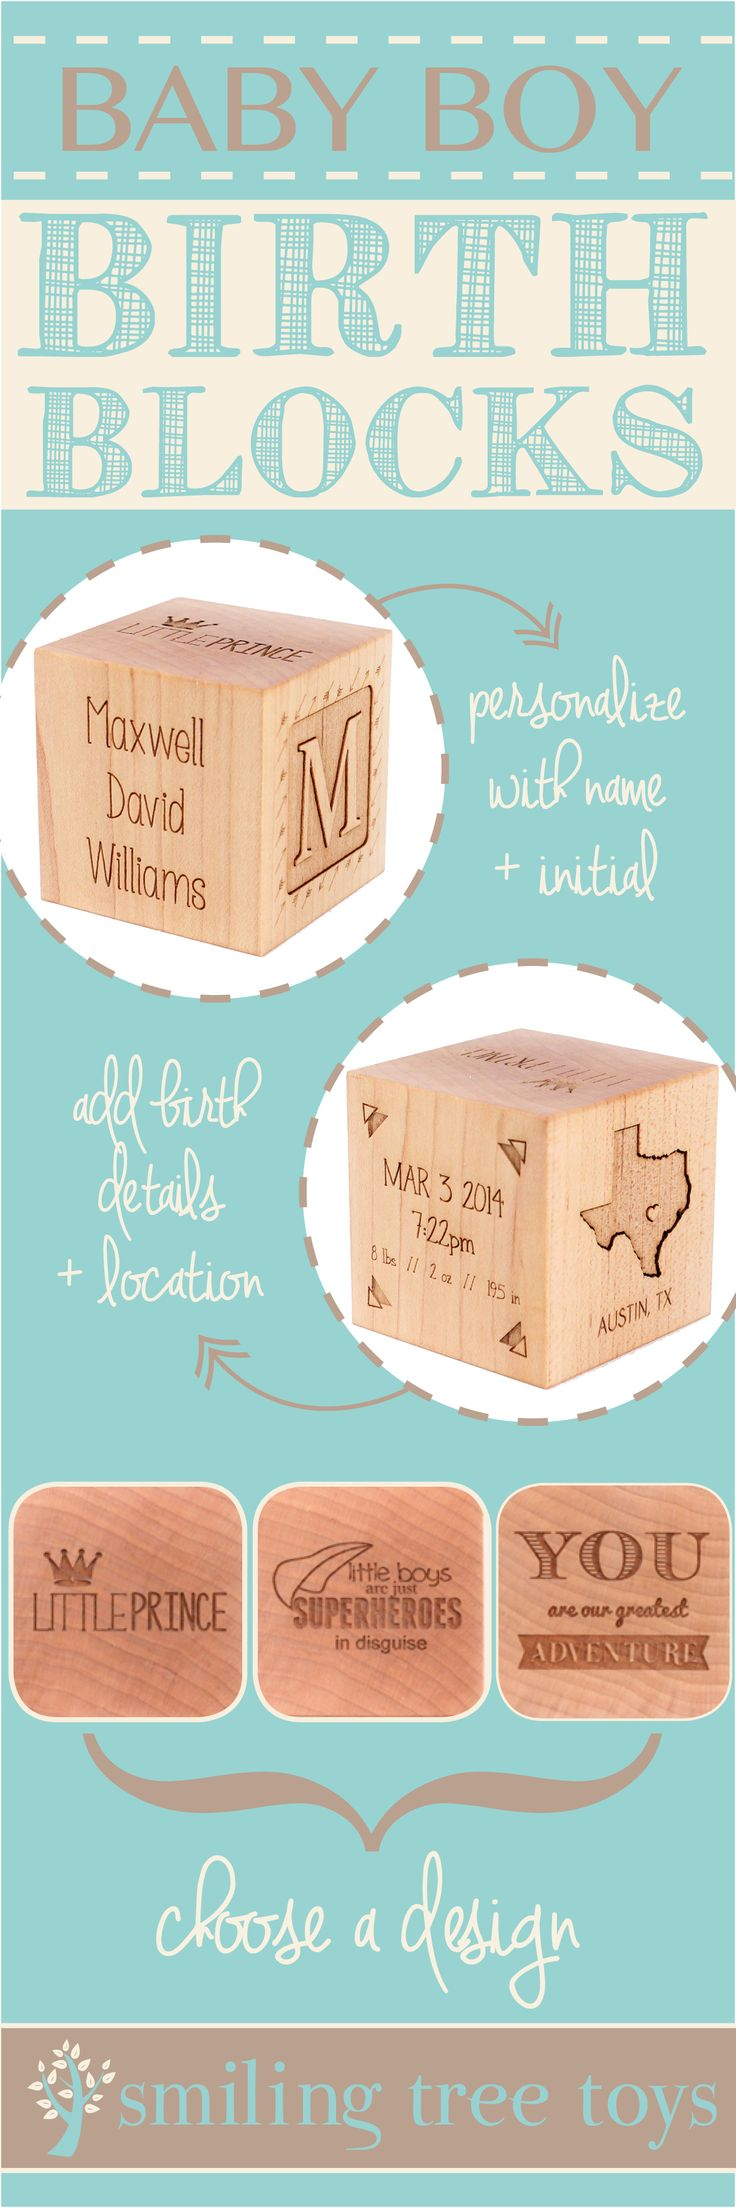 Best 25 personalized baby gifts ideas on pinterest pink keepsake boy birth block the perfect personalized natural heirloom gift celebrating baby negle Image collections